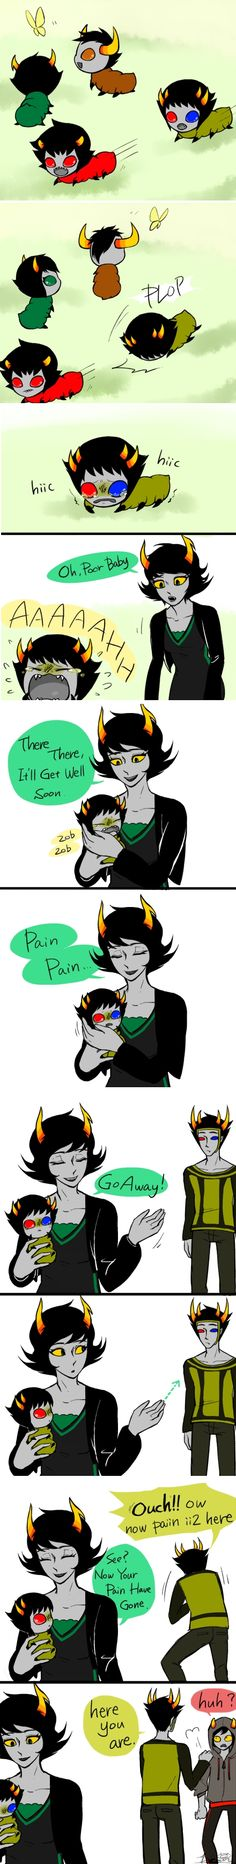 That's so cute Grub's every where. Okay I'm not a homestuck fan but I like this Homestuck Grubs, Homestuck Comic, Homestuck Trolls, Home Stuck, Davekat, And So It Begins, Kawaii, Creepypasta, Nerdy